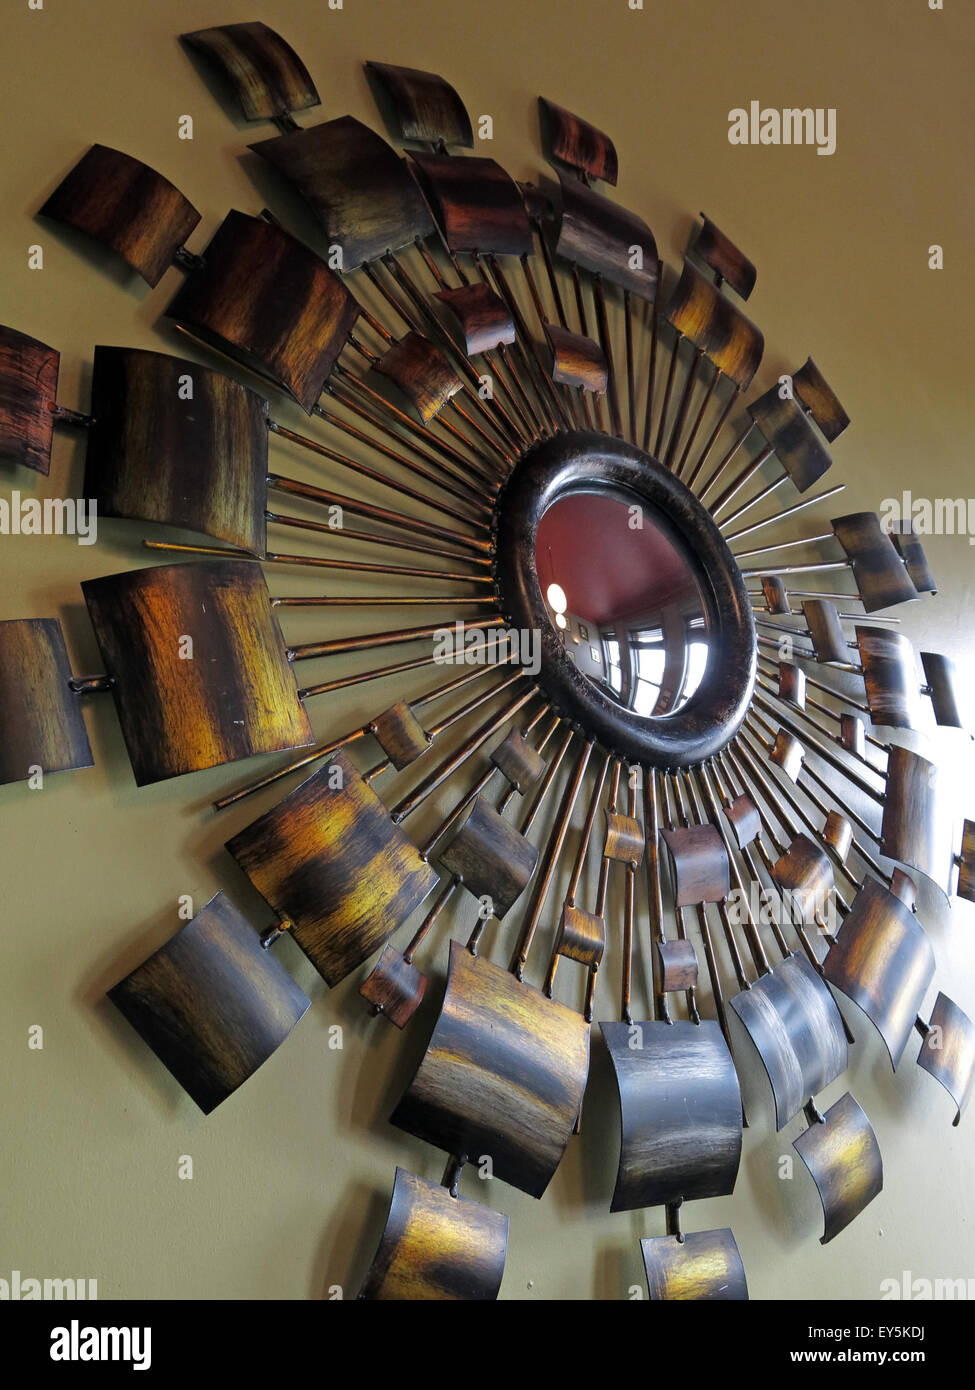 England,UK,pub,bar,bars,pubs,drink,drinking,booze,boozer,traditional,decoration,mirror,1970s,1970's,70s,style,kitsch,wall,circular,circle,copper,brass,metal,metallic,GoTonySmith,Buy Pictures of,Buy Images Of